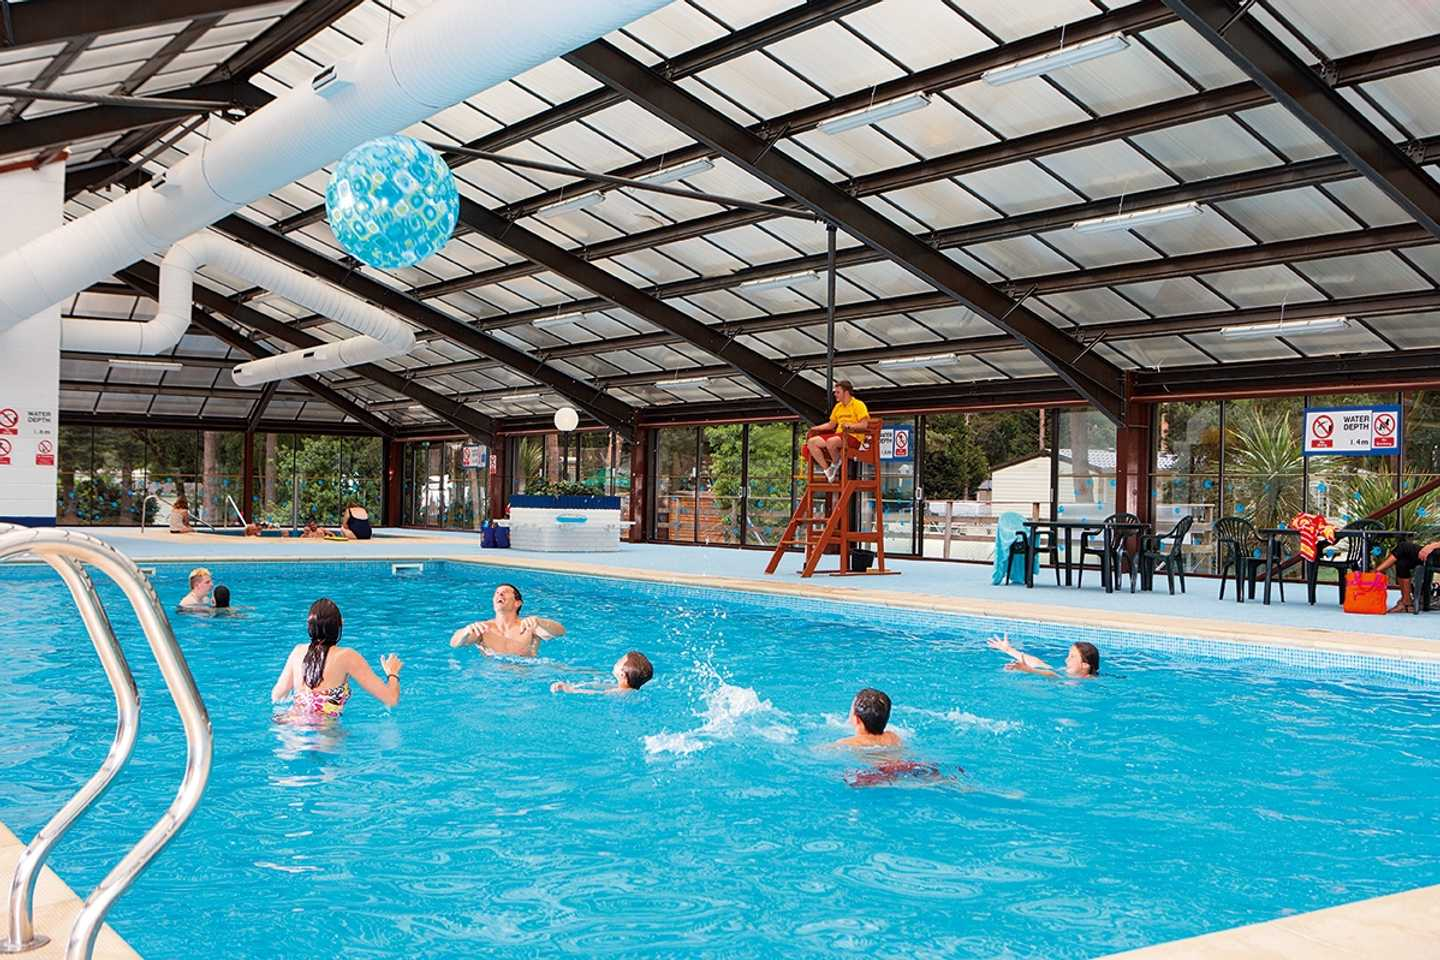 Family fun in the indoor pool at Wild Duck